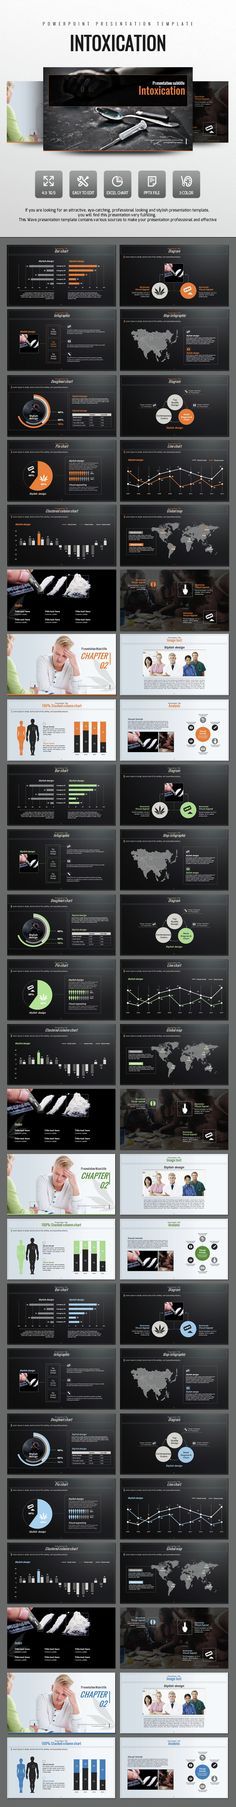 Intoxication PowerPoint (PowerPoint Templates)